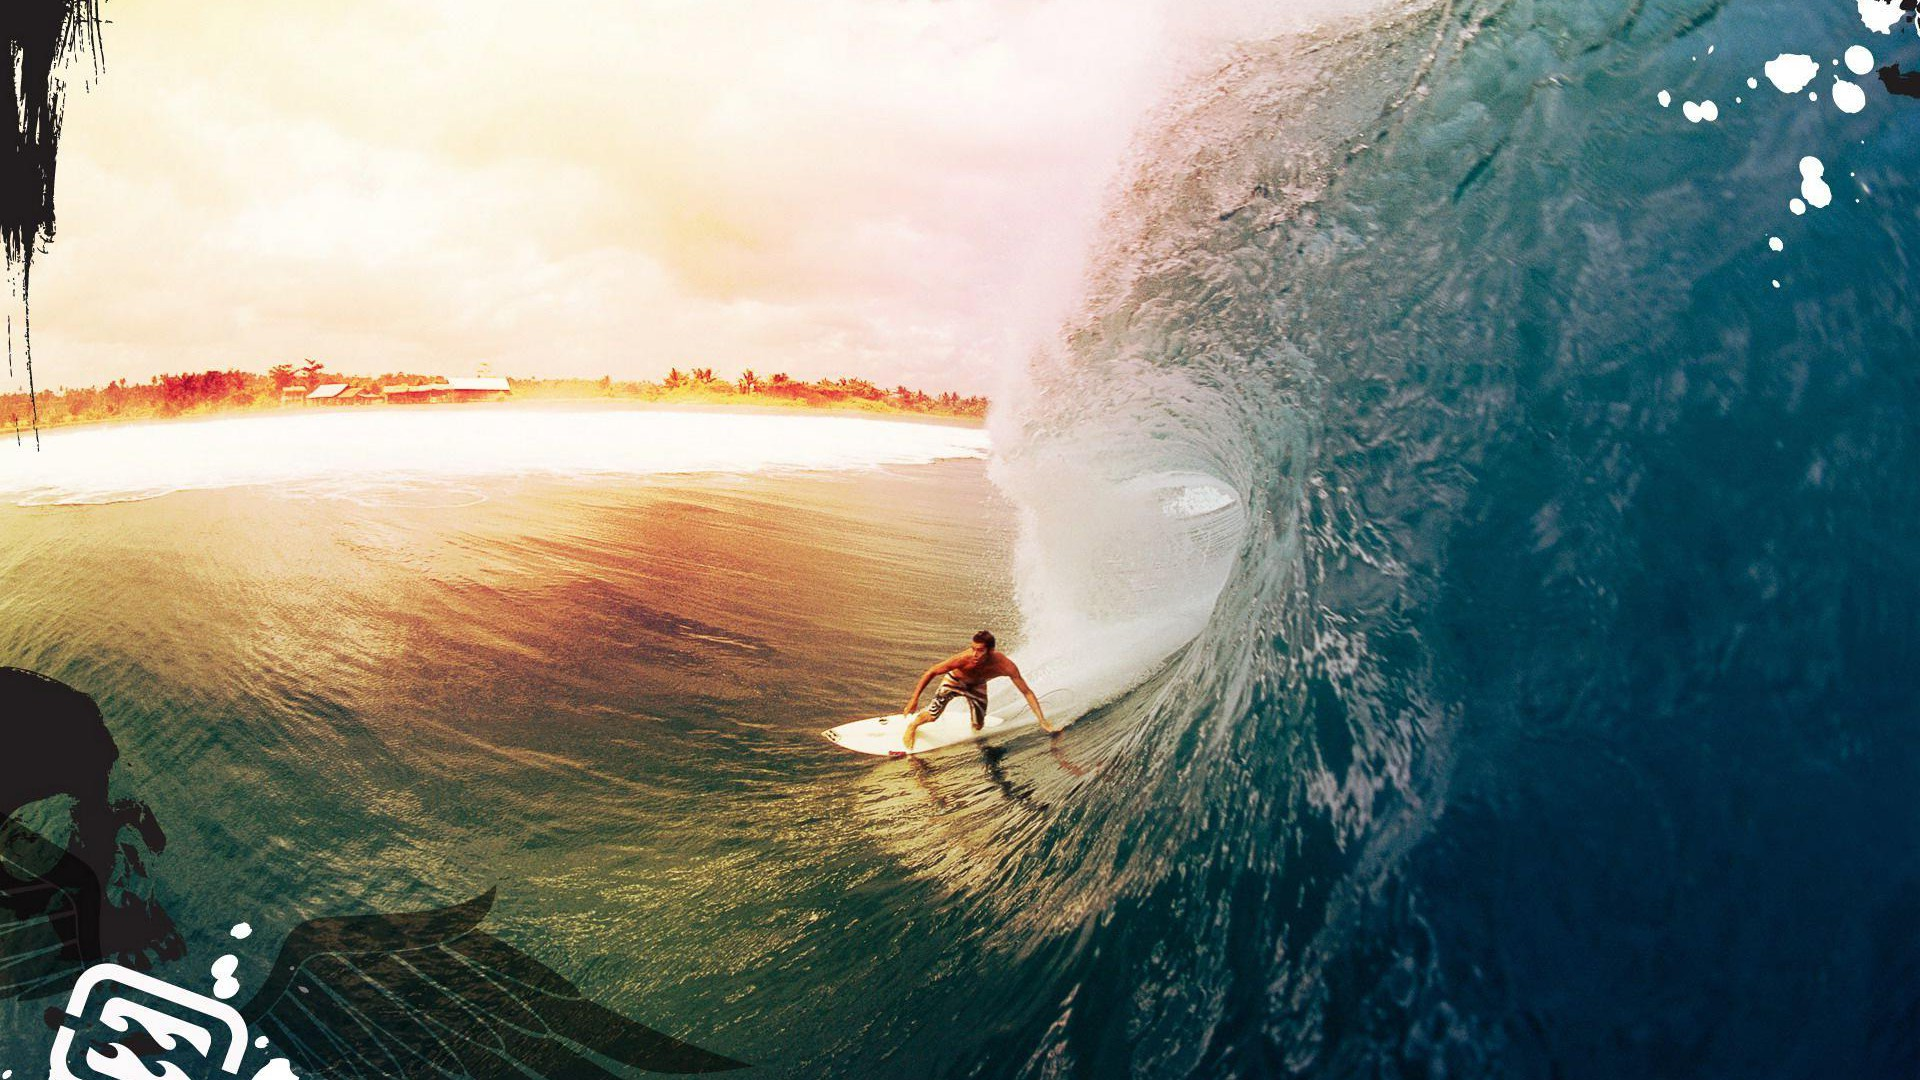 Other Resolution: Stunning Wave Surfing Wallpaper